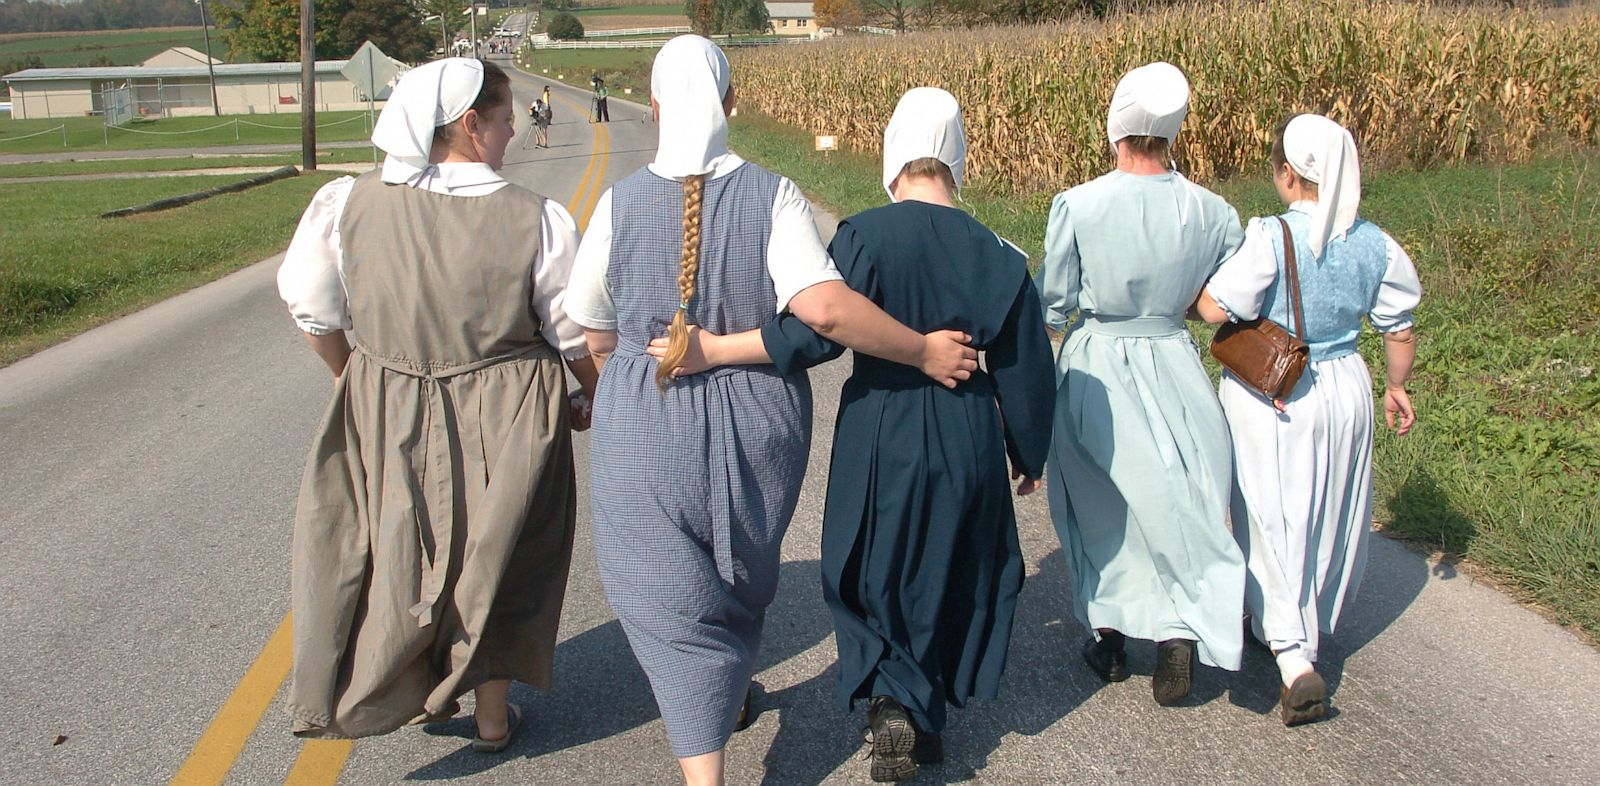 the amish life Living among them helped us shape our life in a way guided by faith, not by general societal expectations for us, a fascinating part of the amish journey was seeing how the people of this faith.